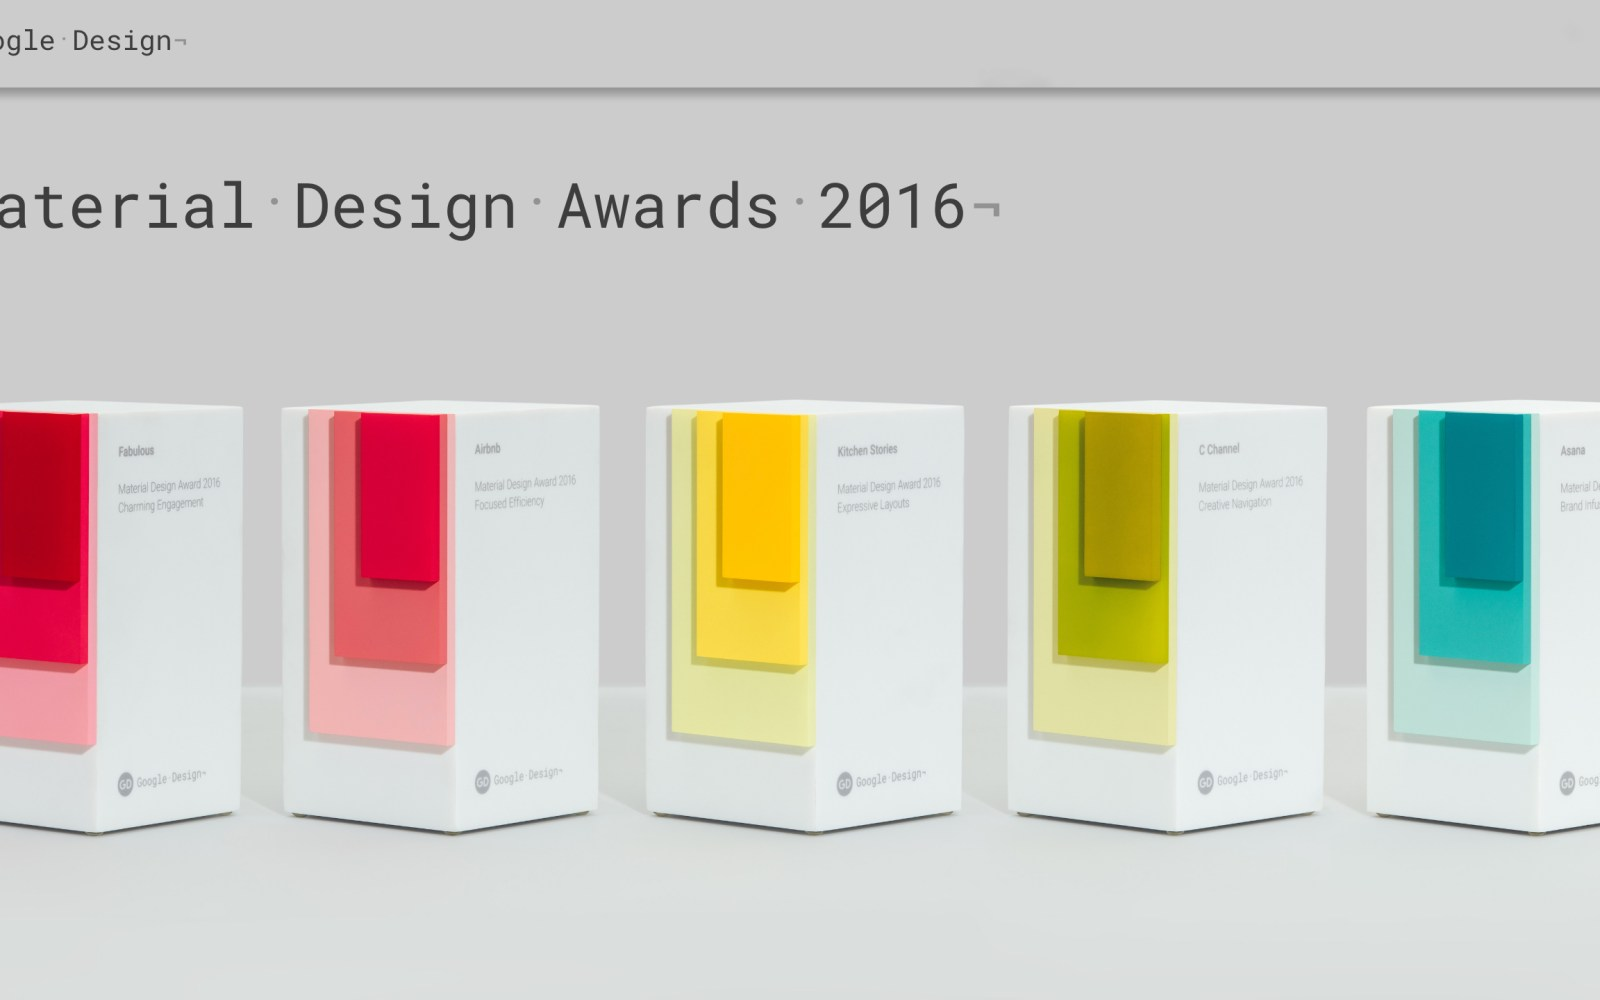 Google just published the Material Design Awards for 2016, here are the winning Android apps